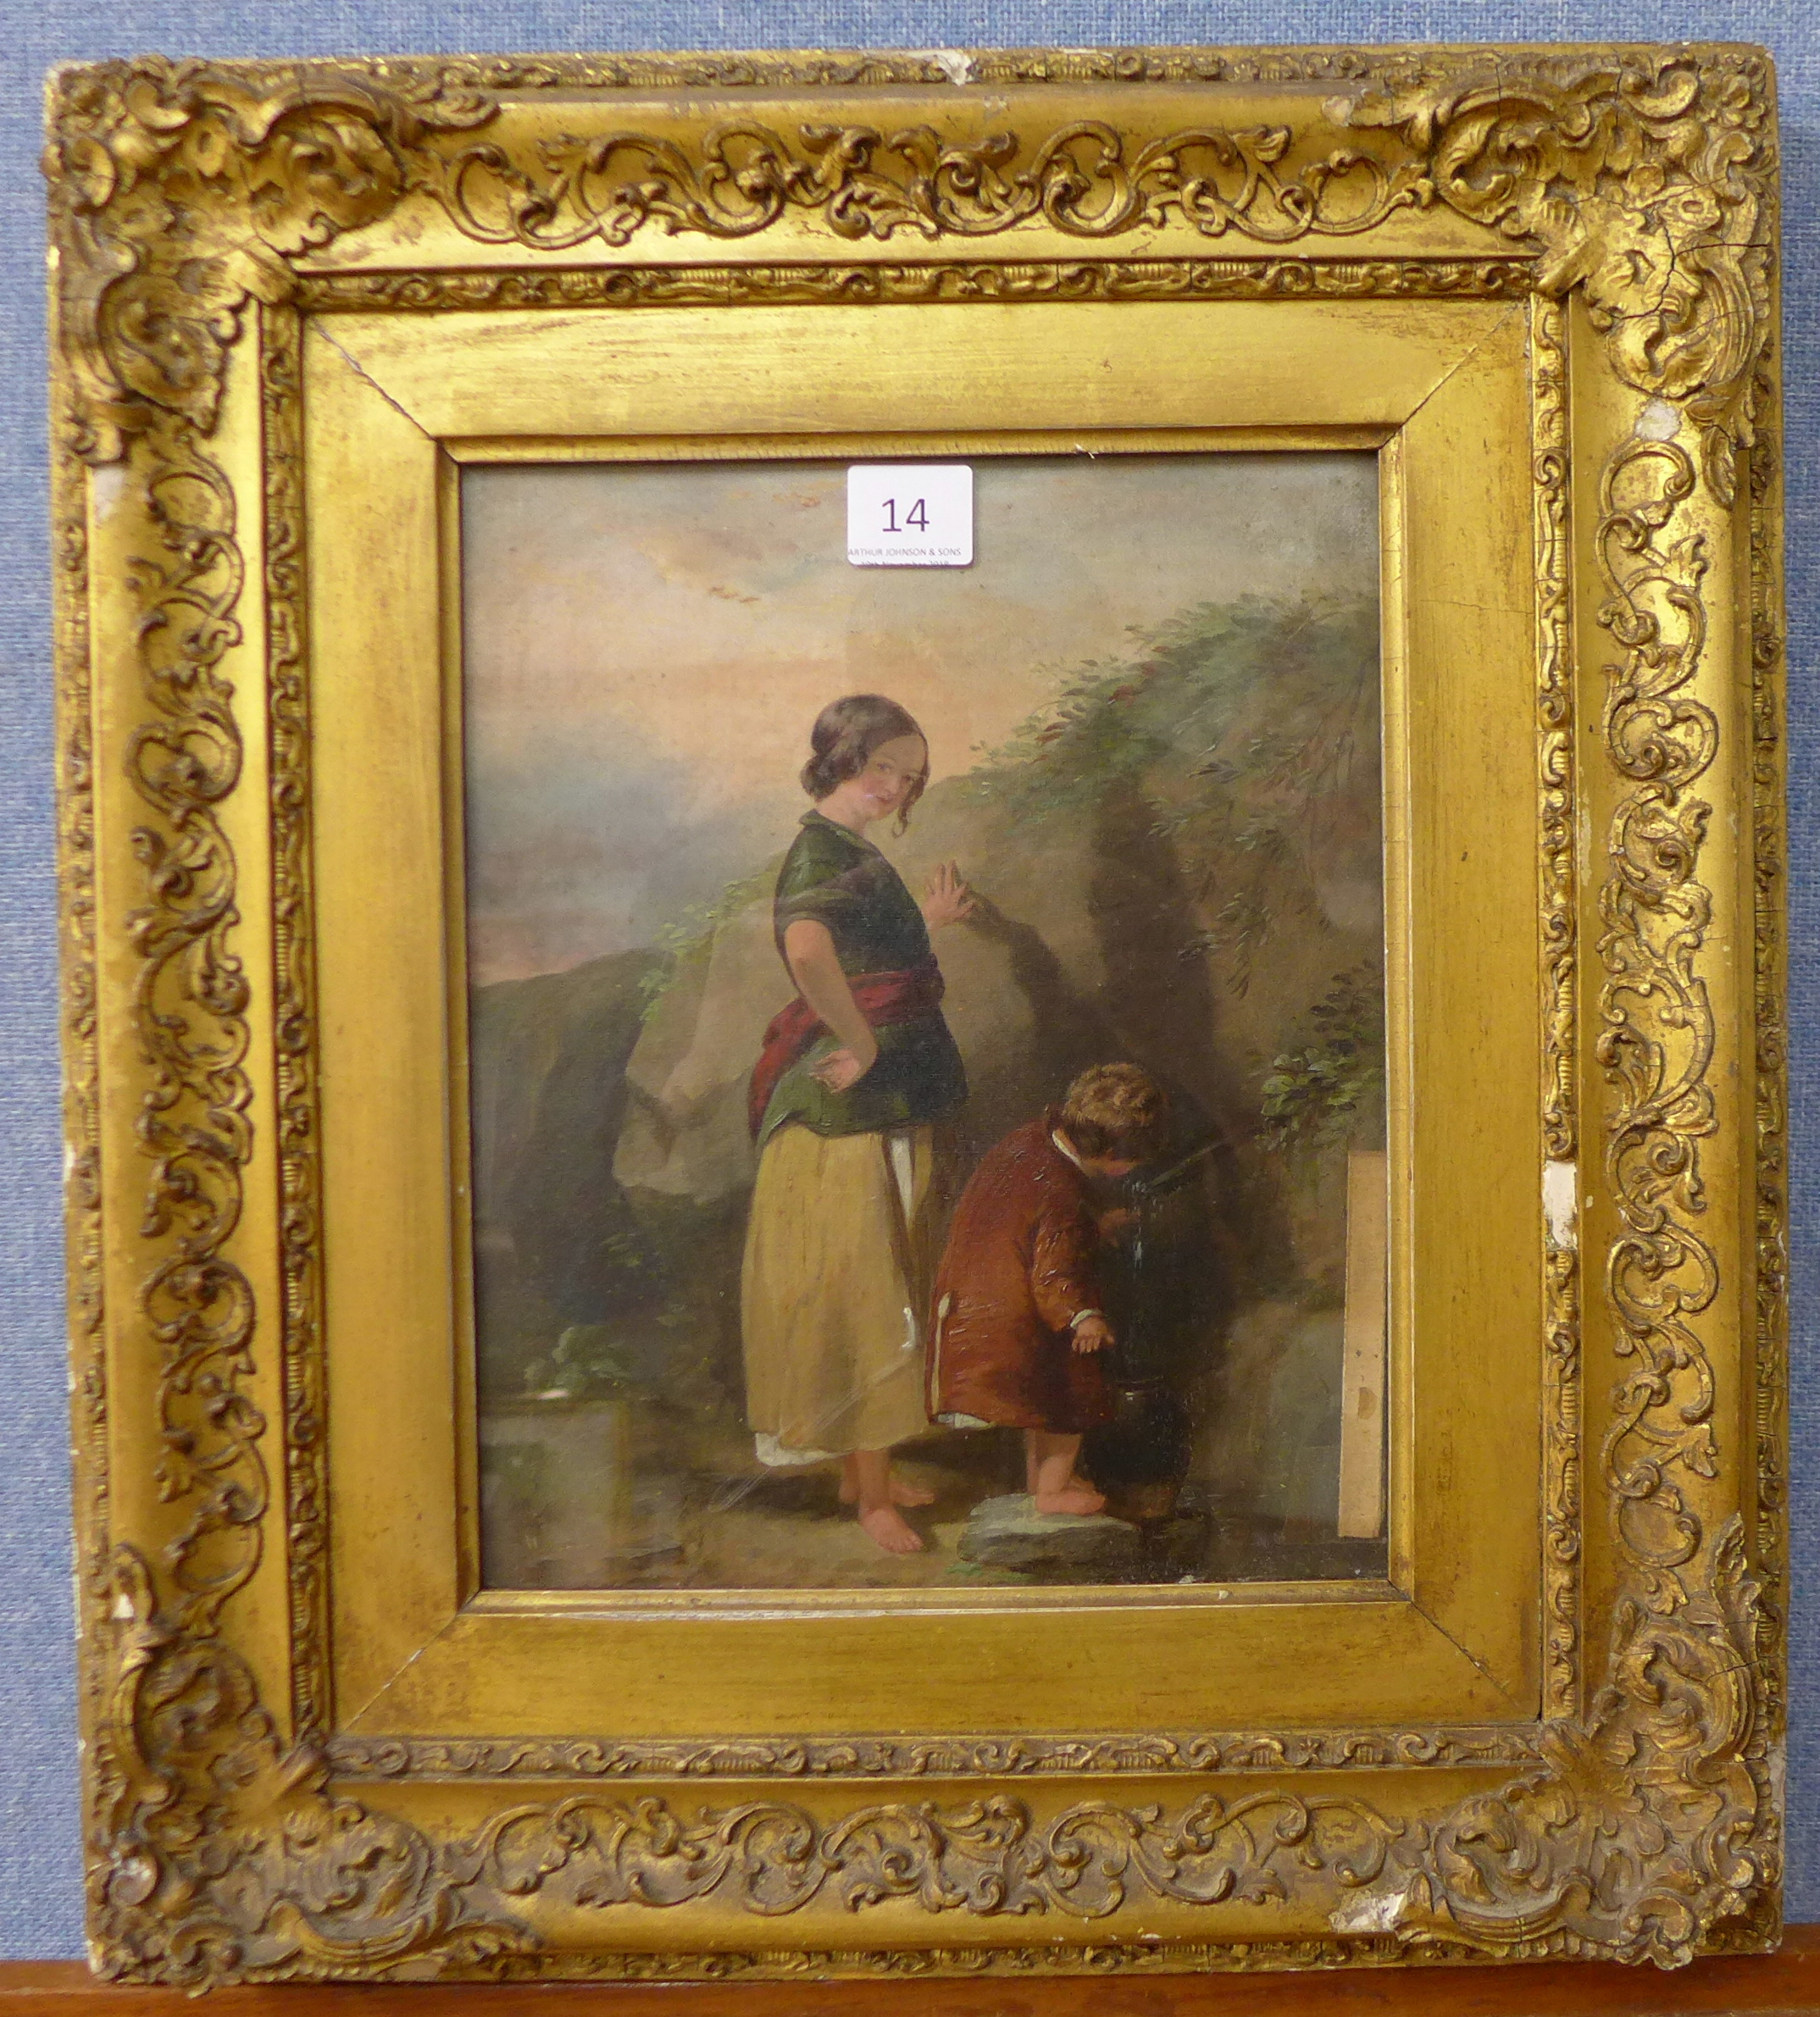 Lot 14 - English School, mother and child, oil on canvas, 27 x 22cms,